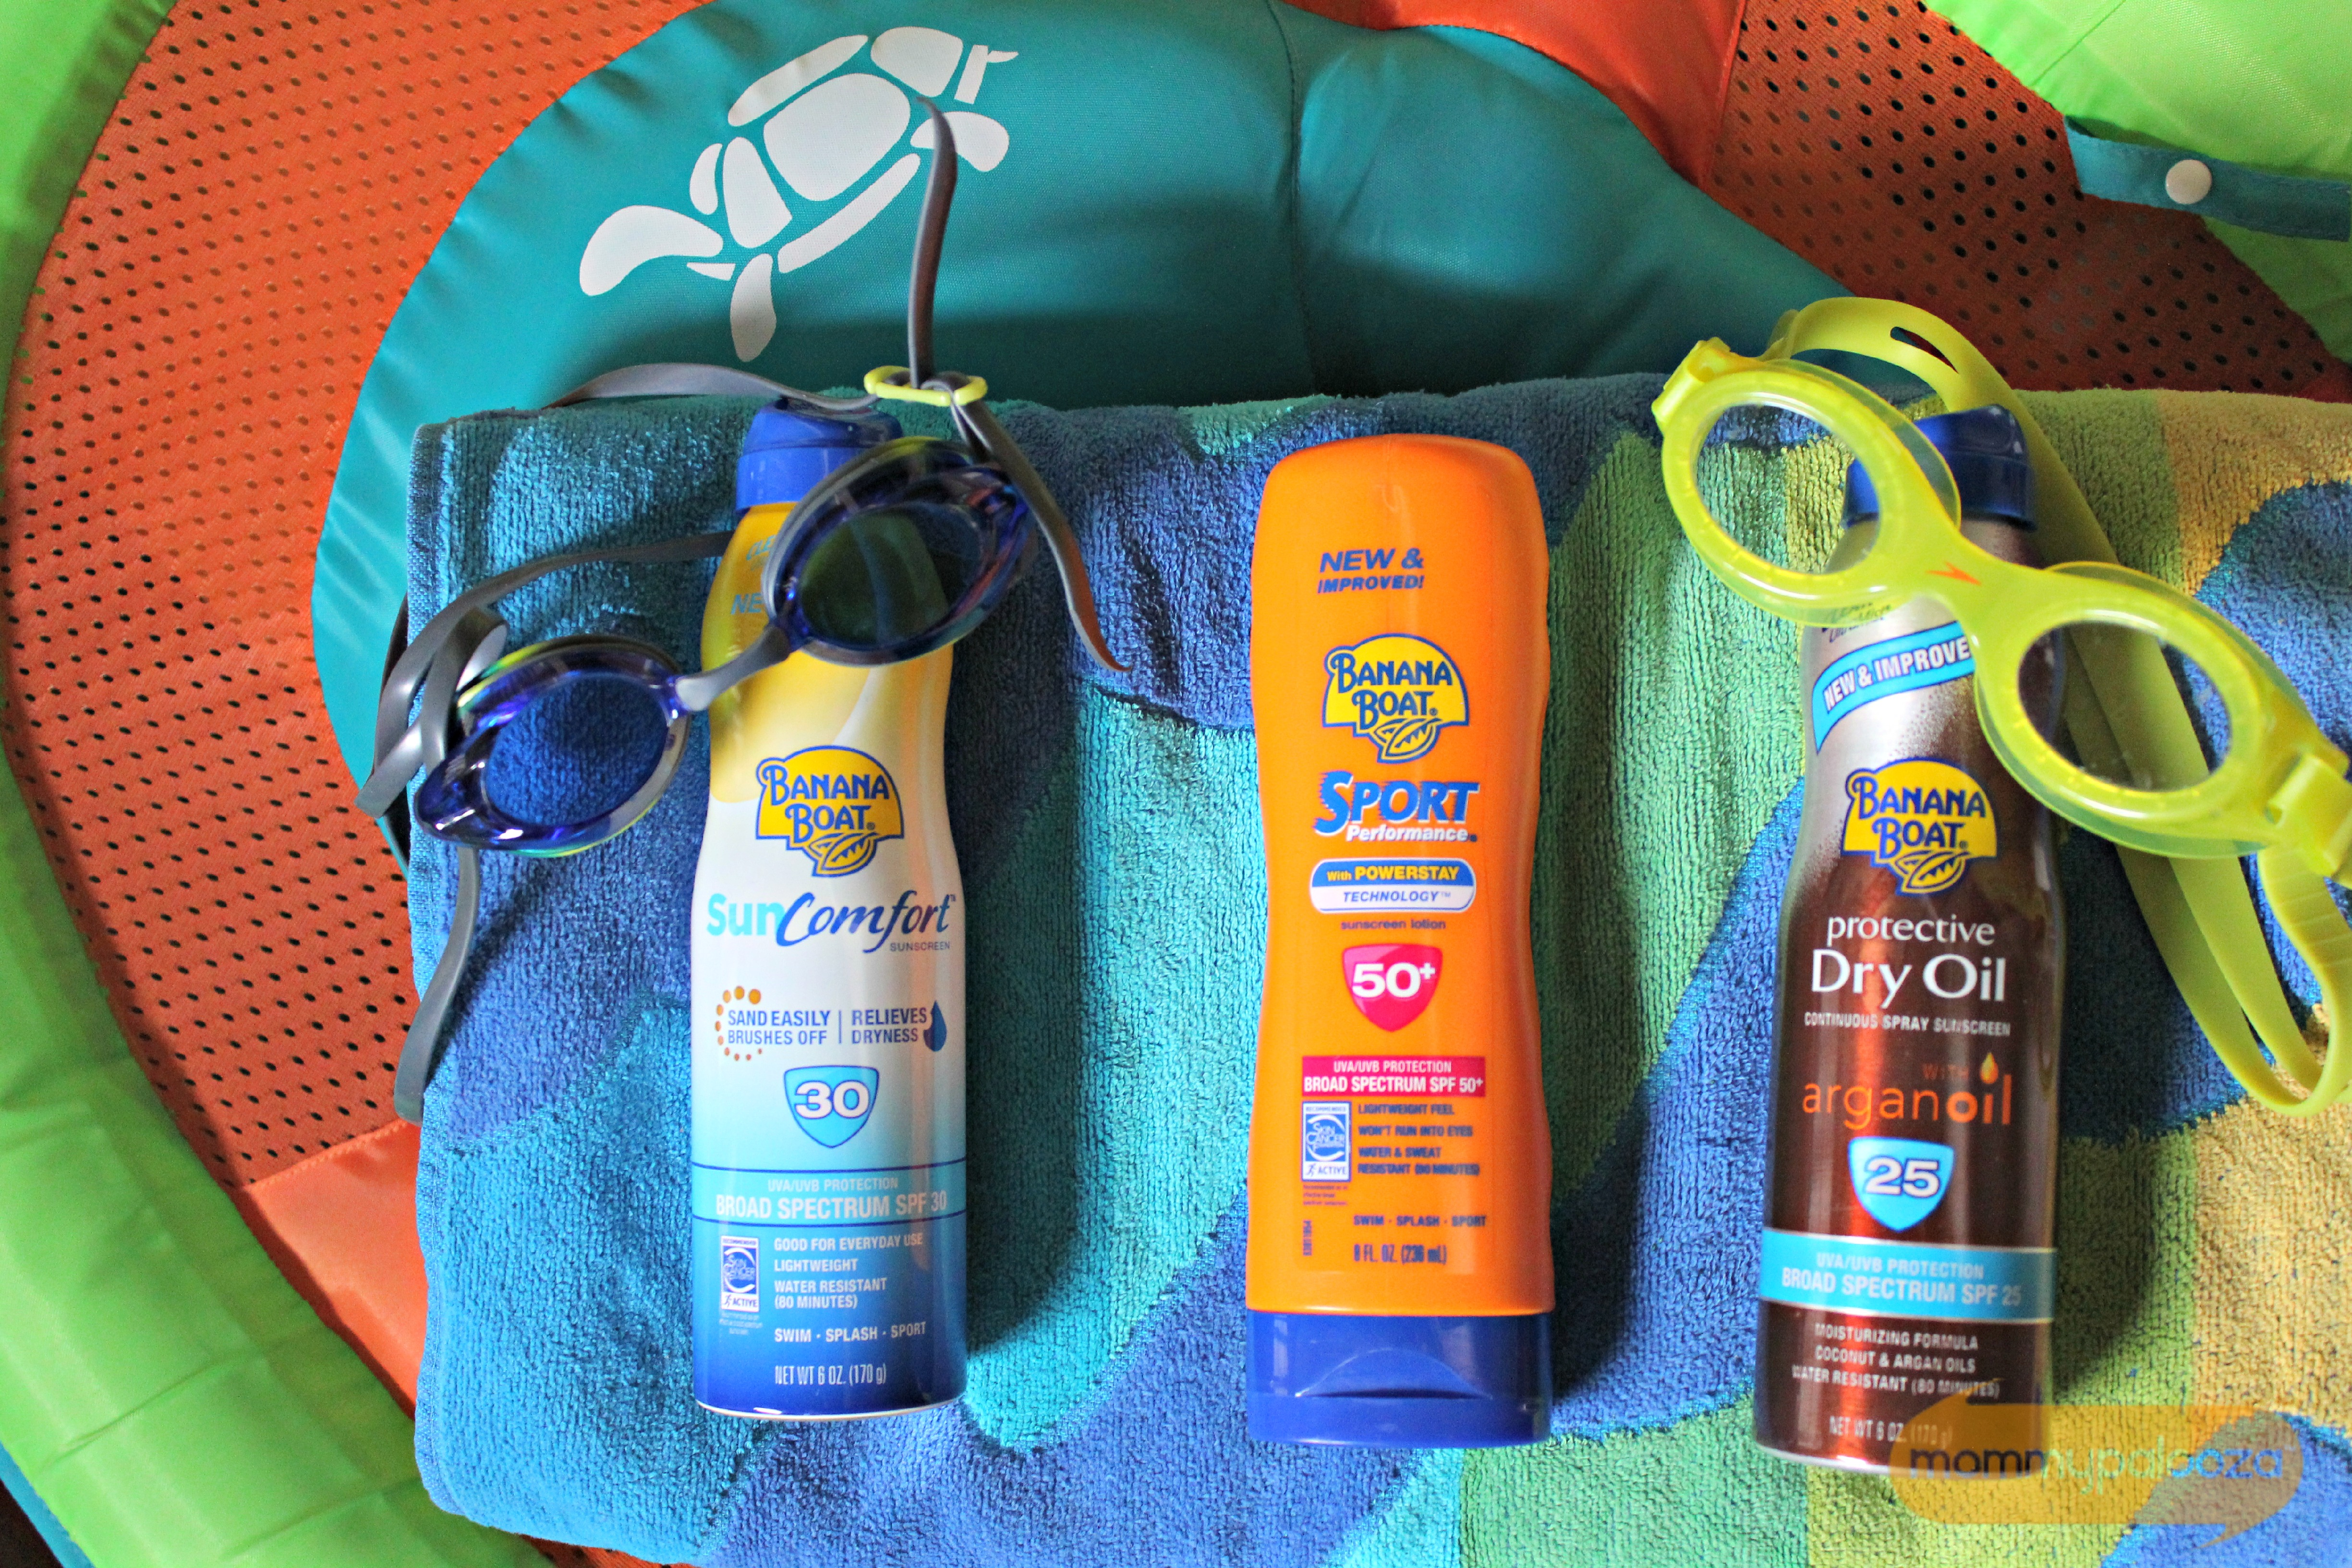 Summertime Family Fun Begins with Banana Boat #BestSummerEver | Mommypalooza